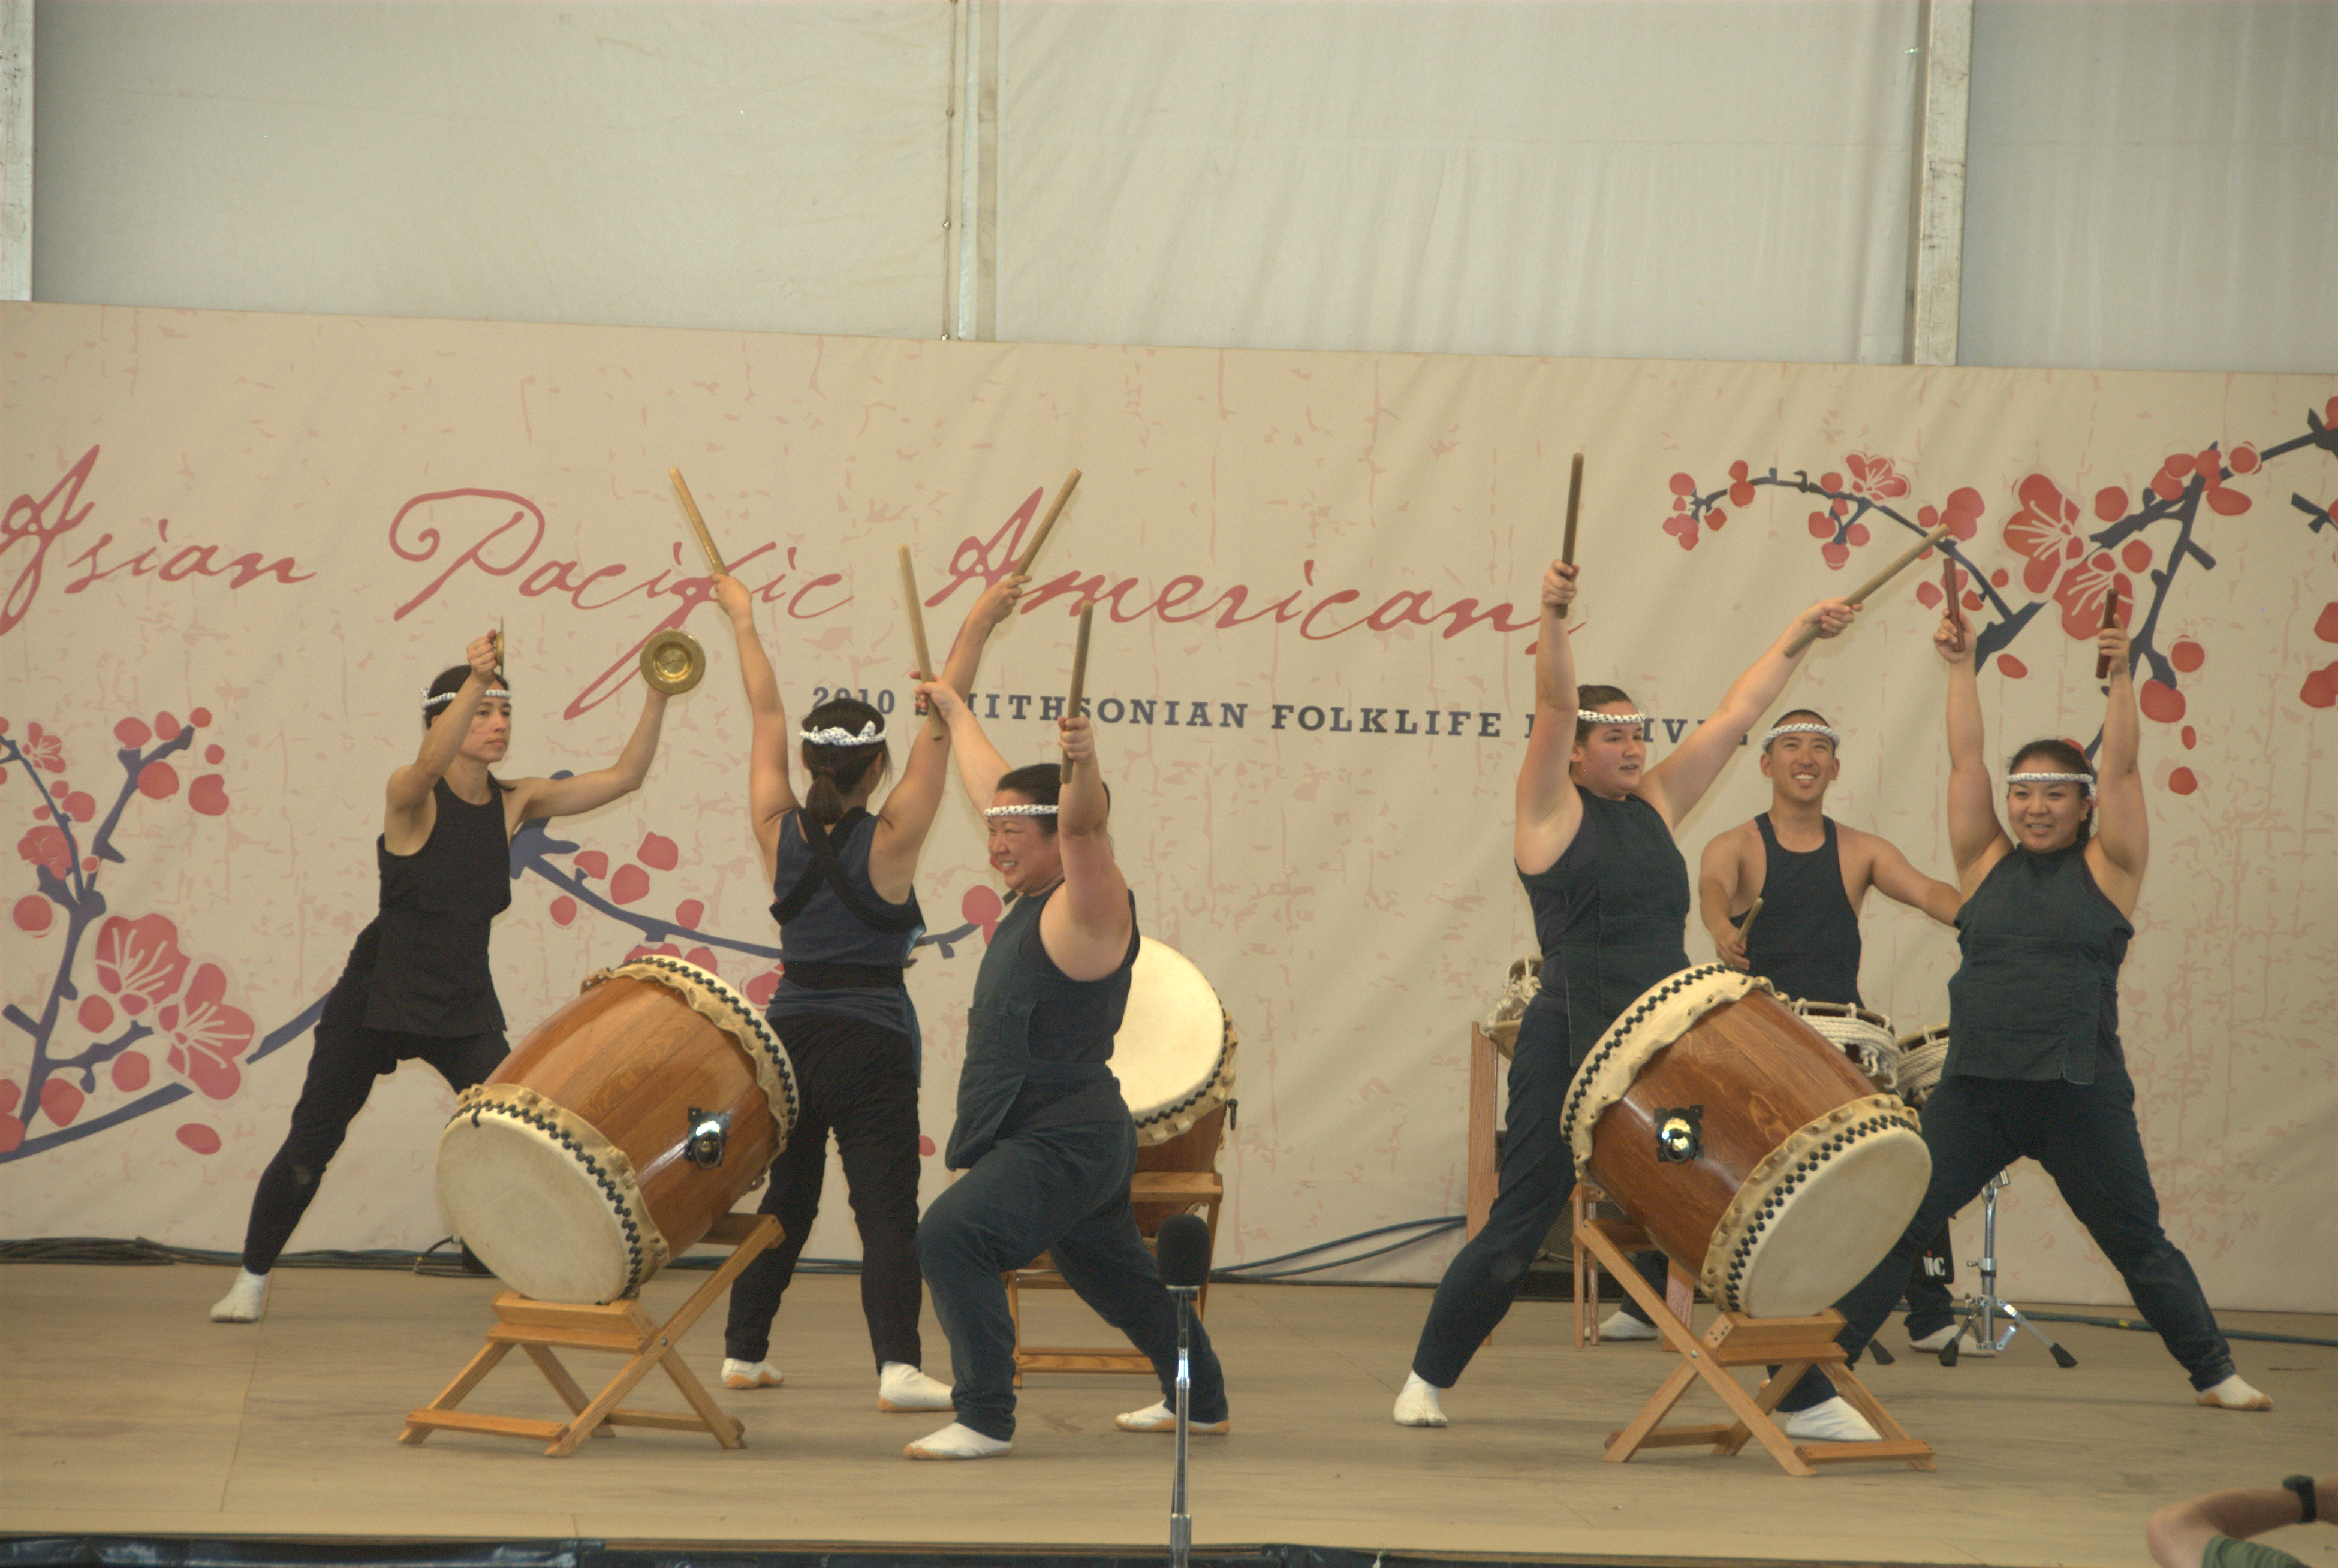 Festival participants with drums and drum sticks on stage with banner behind them.